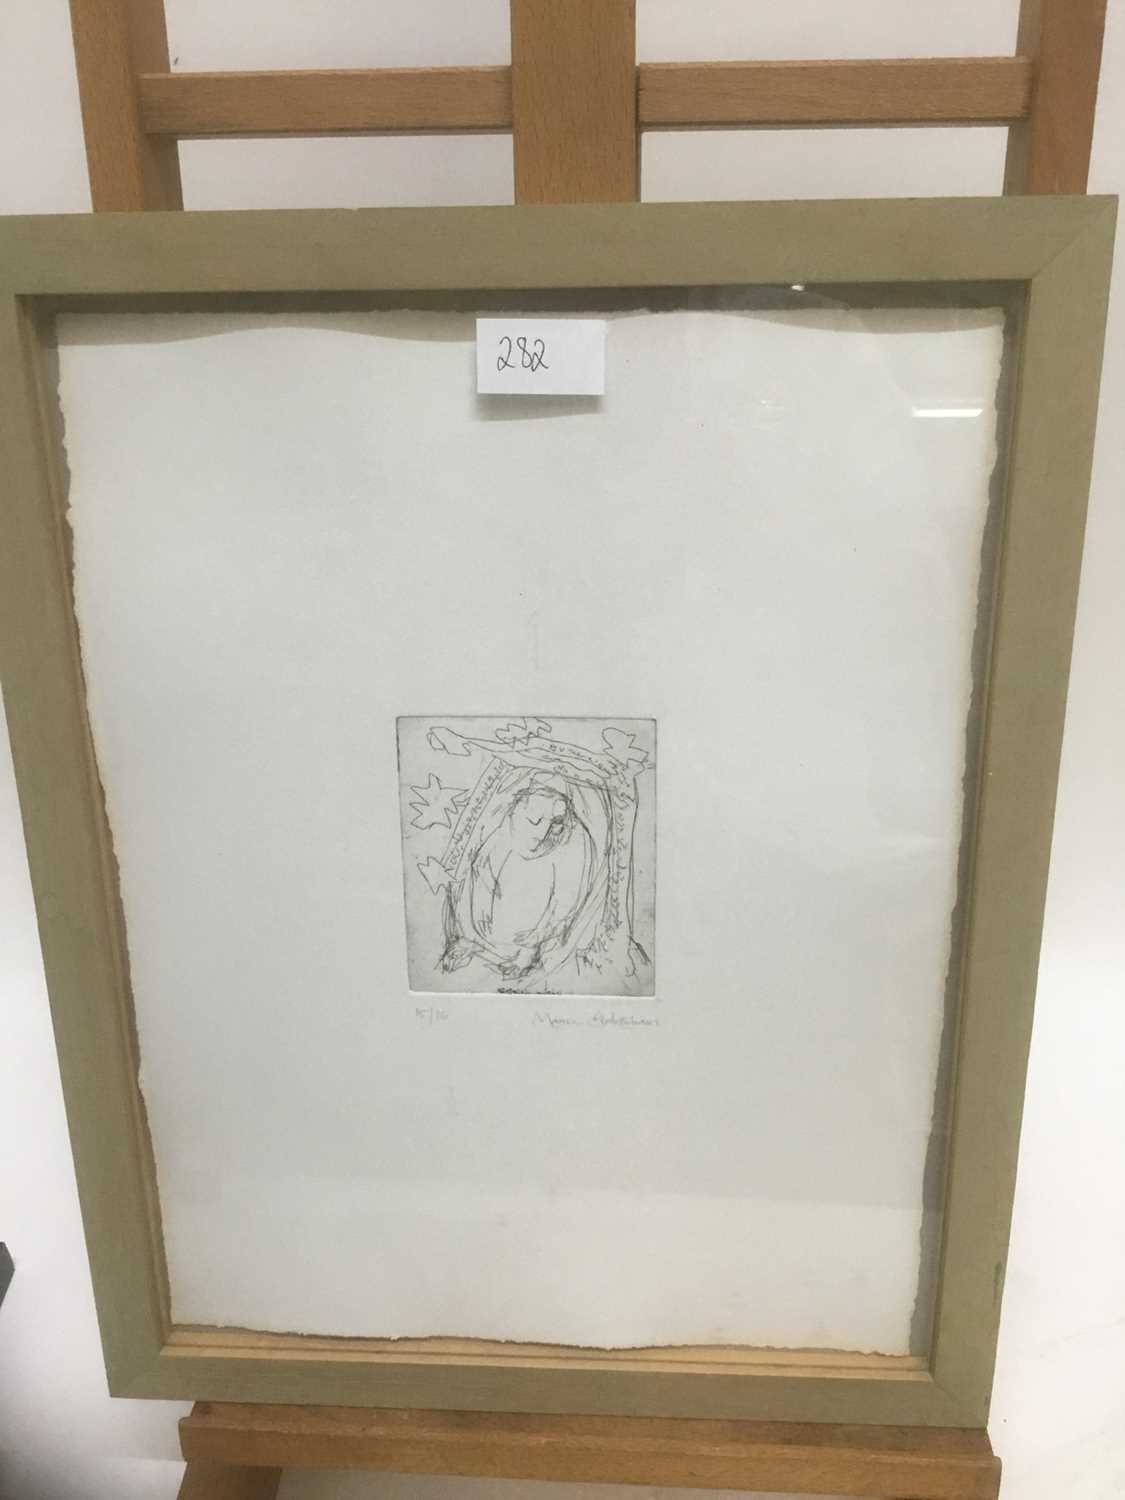 Marcia Blakenham (b. 1946), two signed etchings - figures, one numbered 15/16, in glazed frames - Image 4 of 9